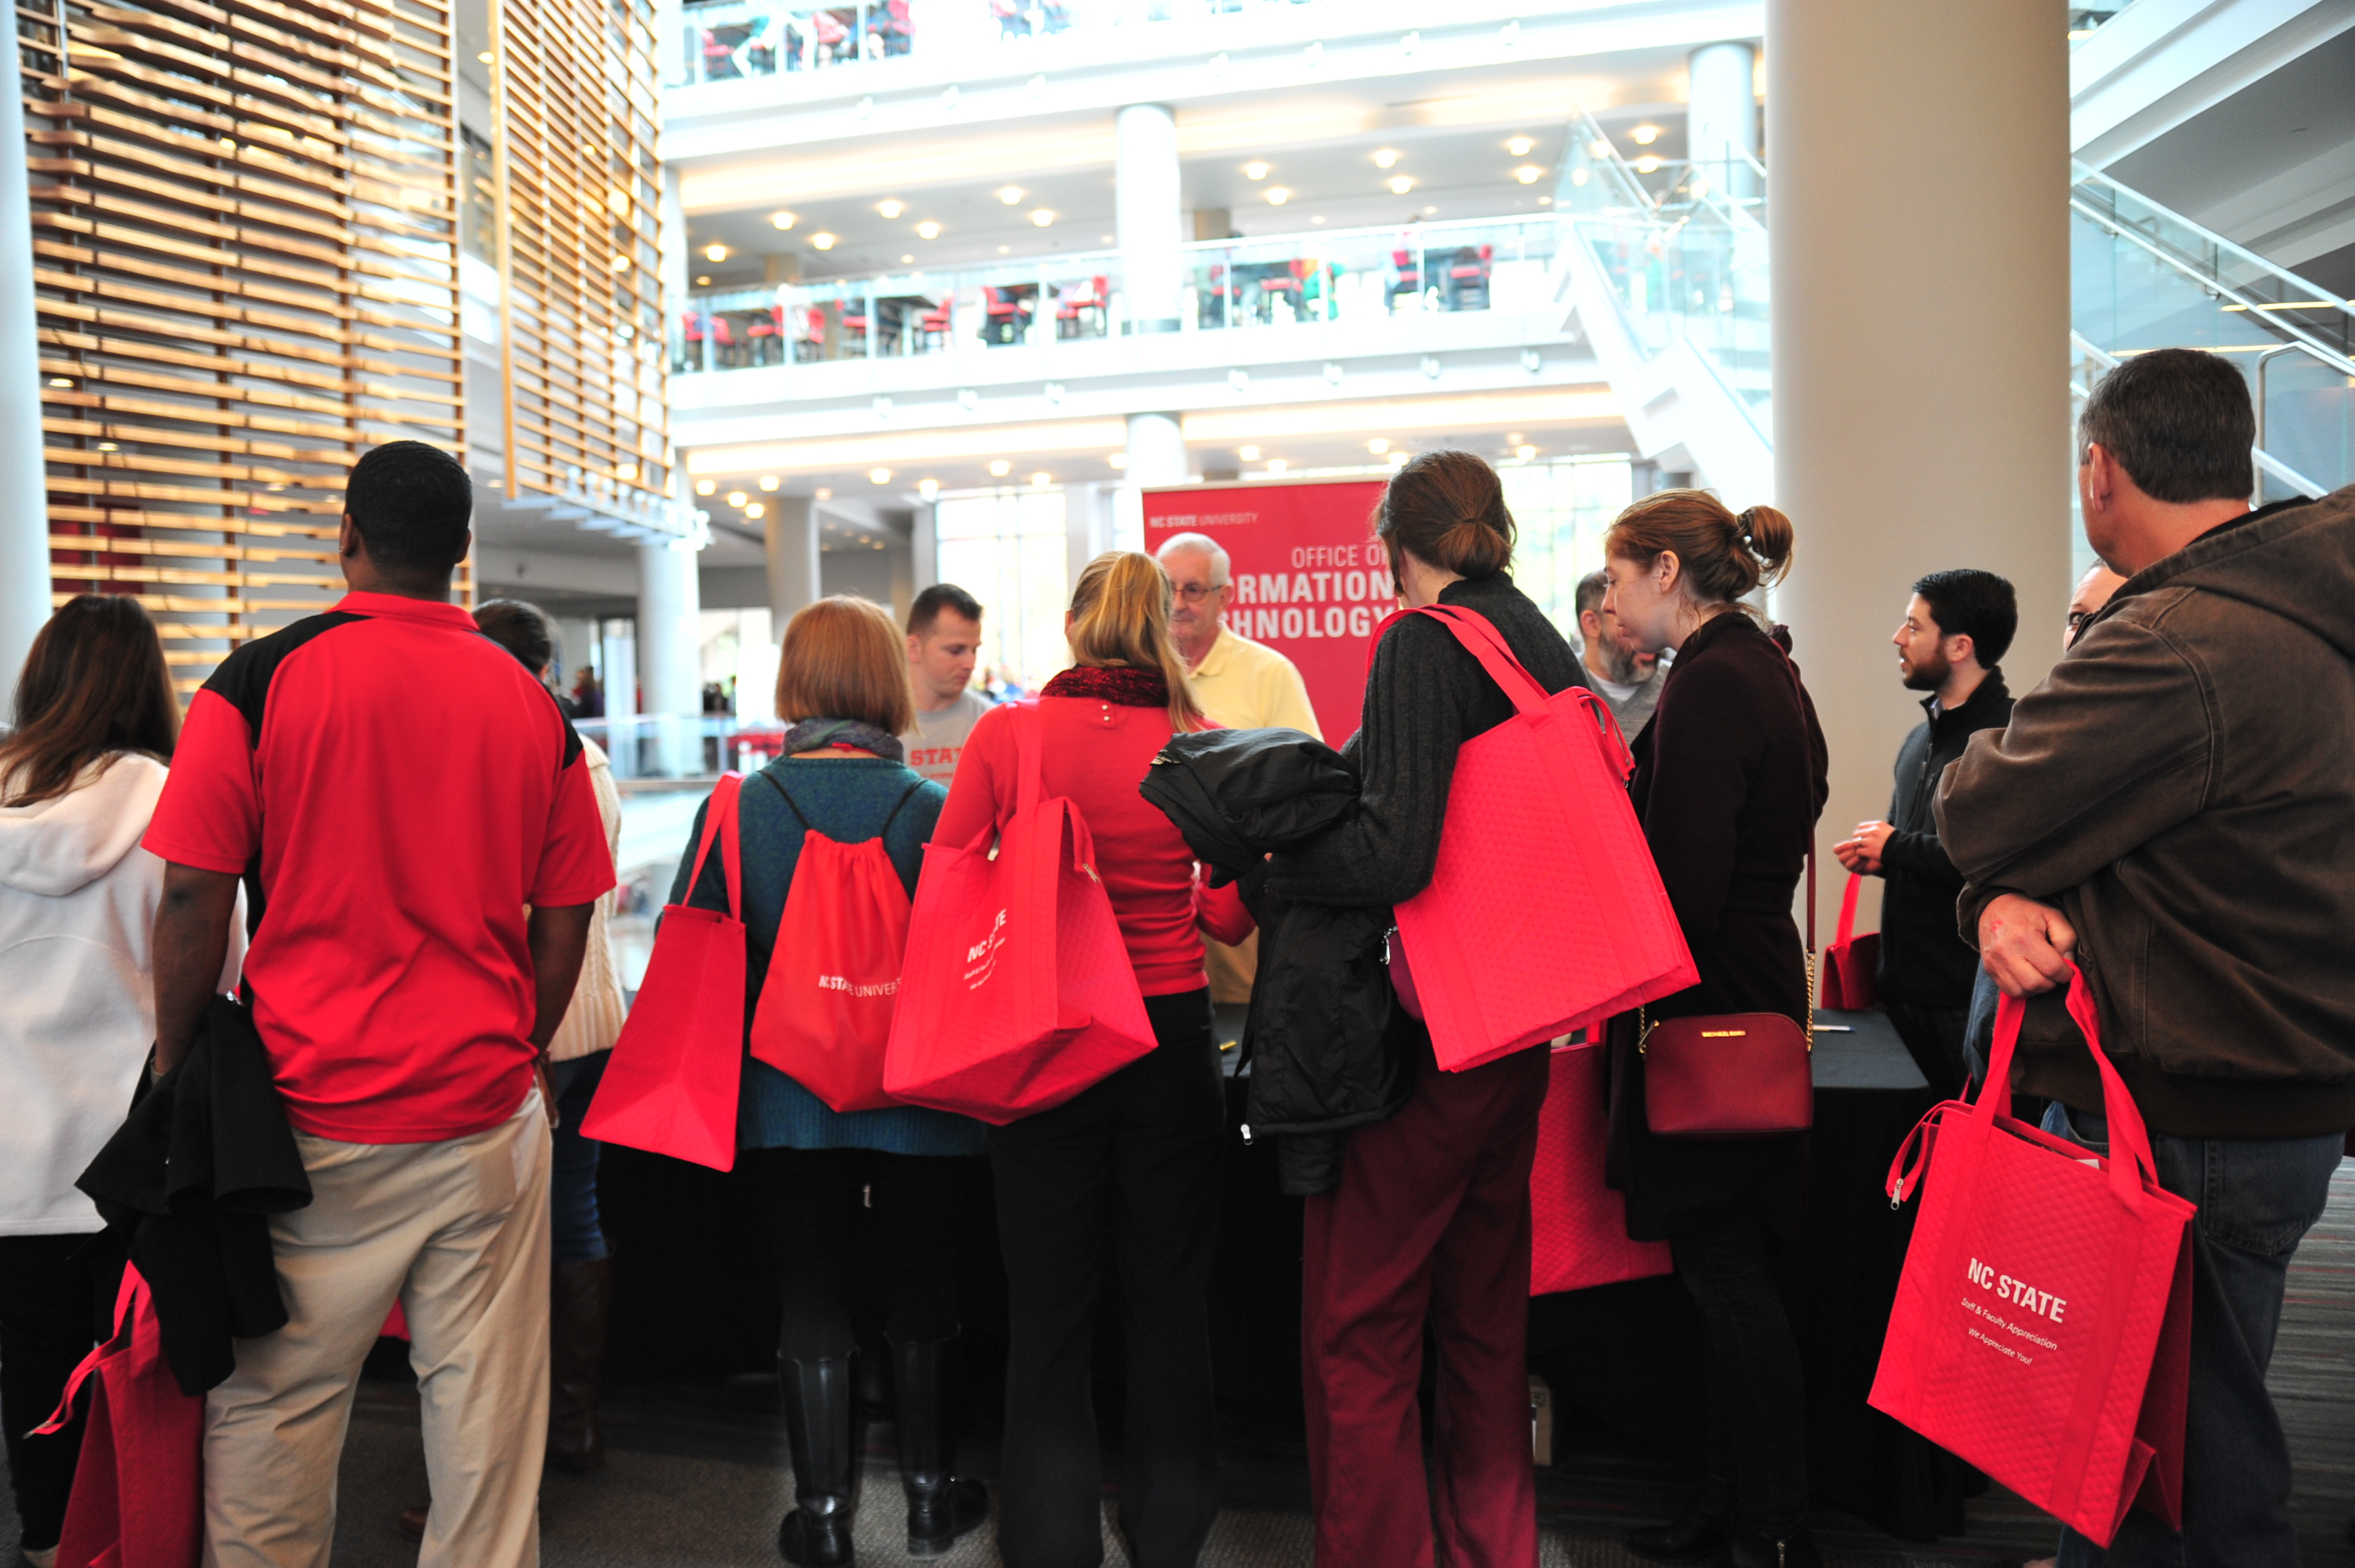 A crowd gathers around the OIT table.